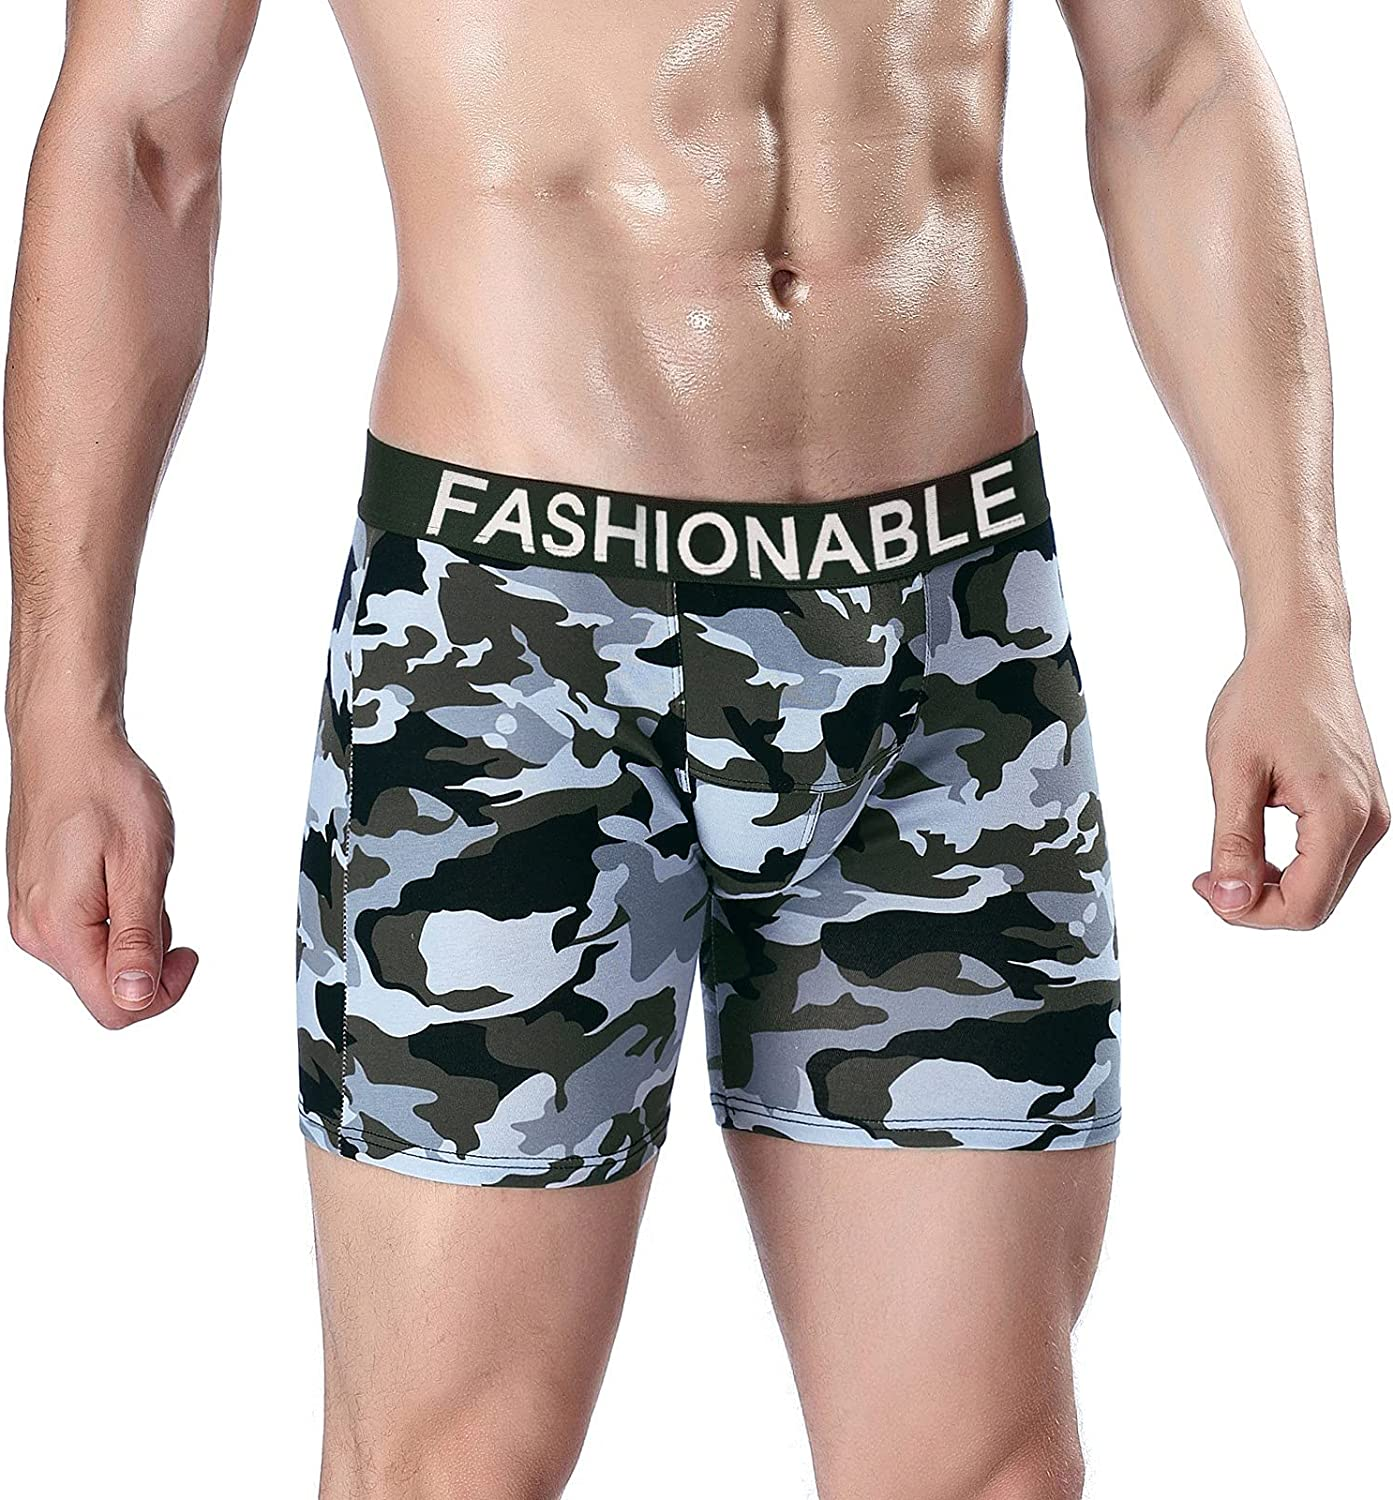 Men's Briefs Soft Camouflage Tiger Sexy Mesh Breathable Cool See-Through Boxers